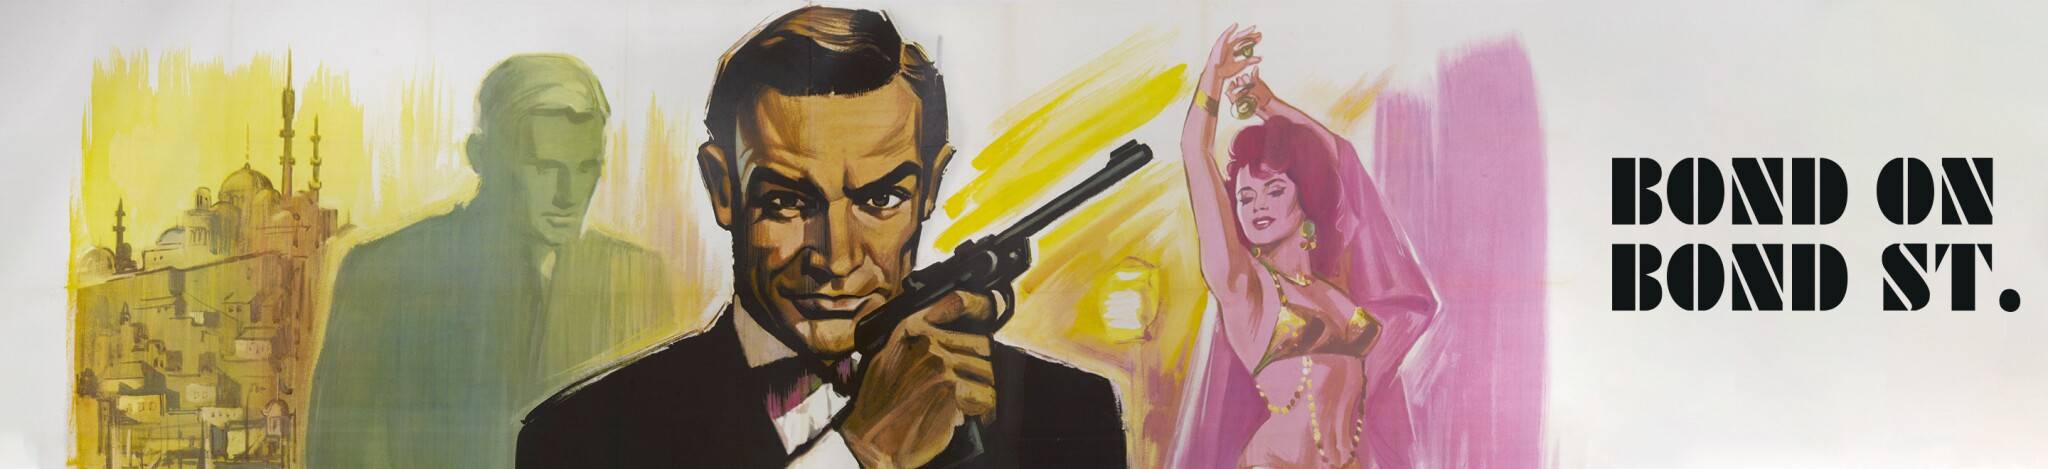 James Bond Film Posters